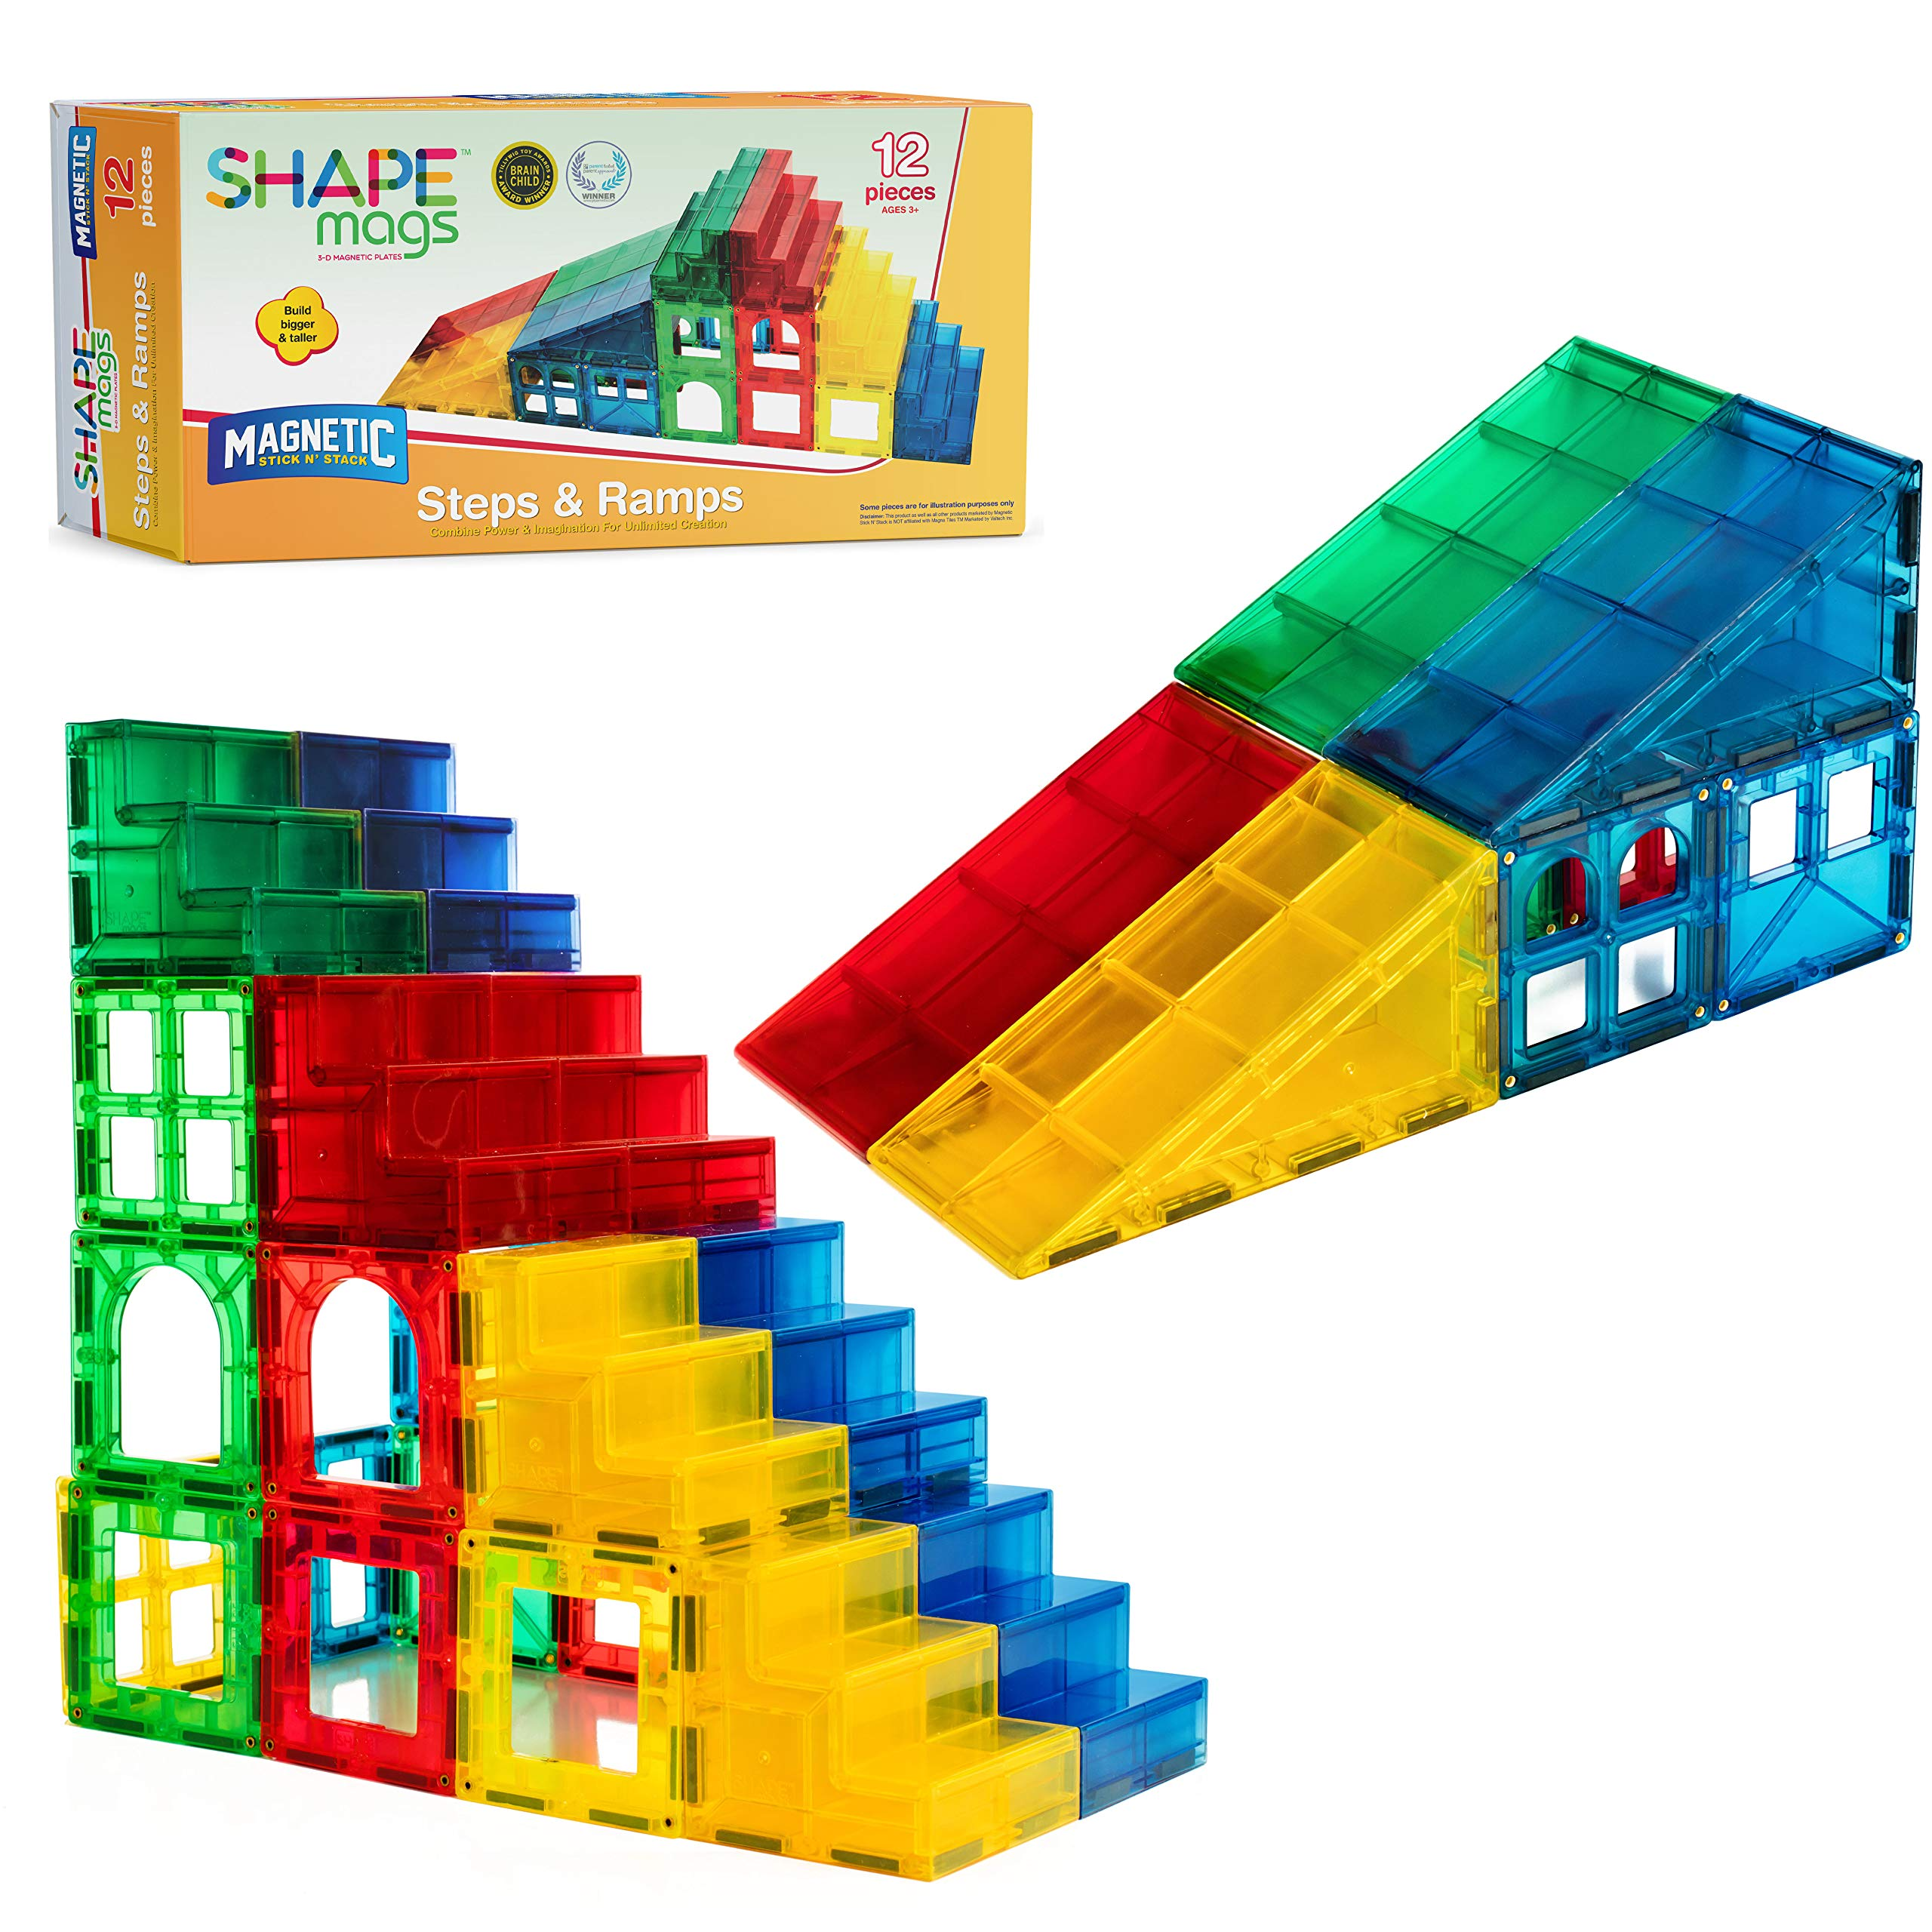 Magnetic Stick N Stack 12 Piece Steps & Ramps Set by Magnetic Stick N Stack